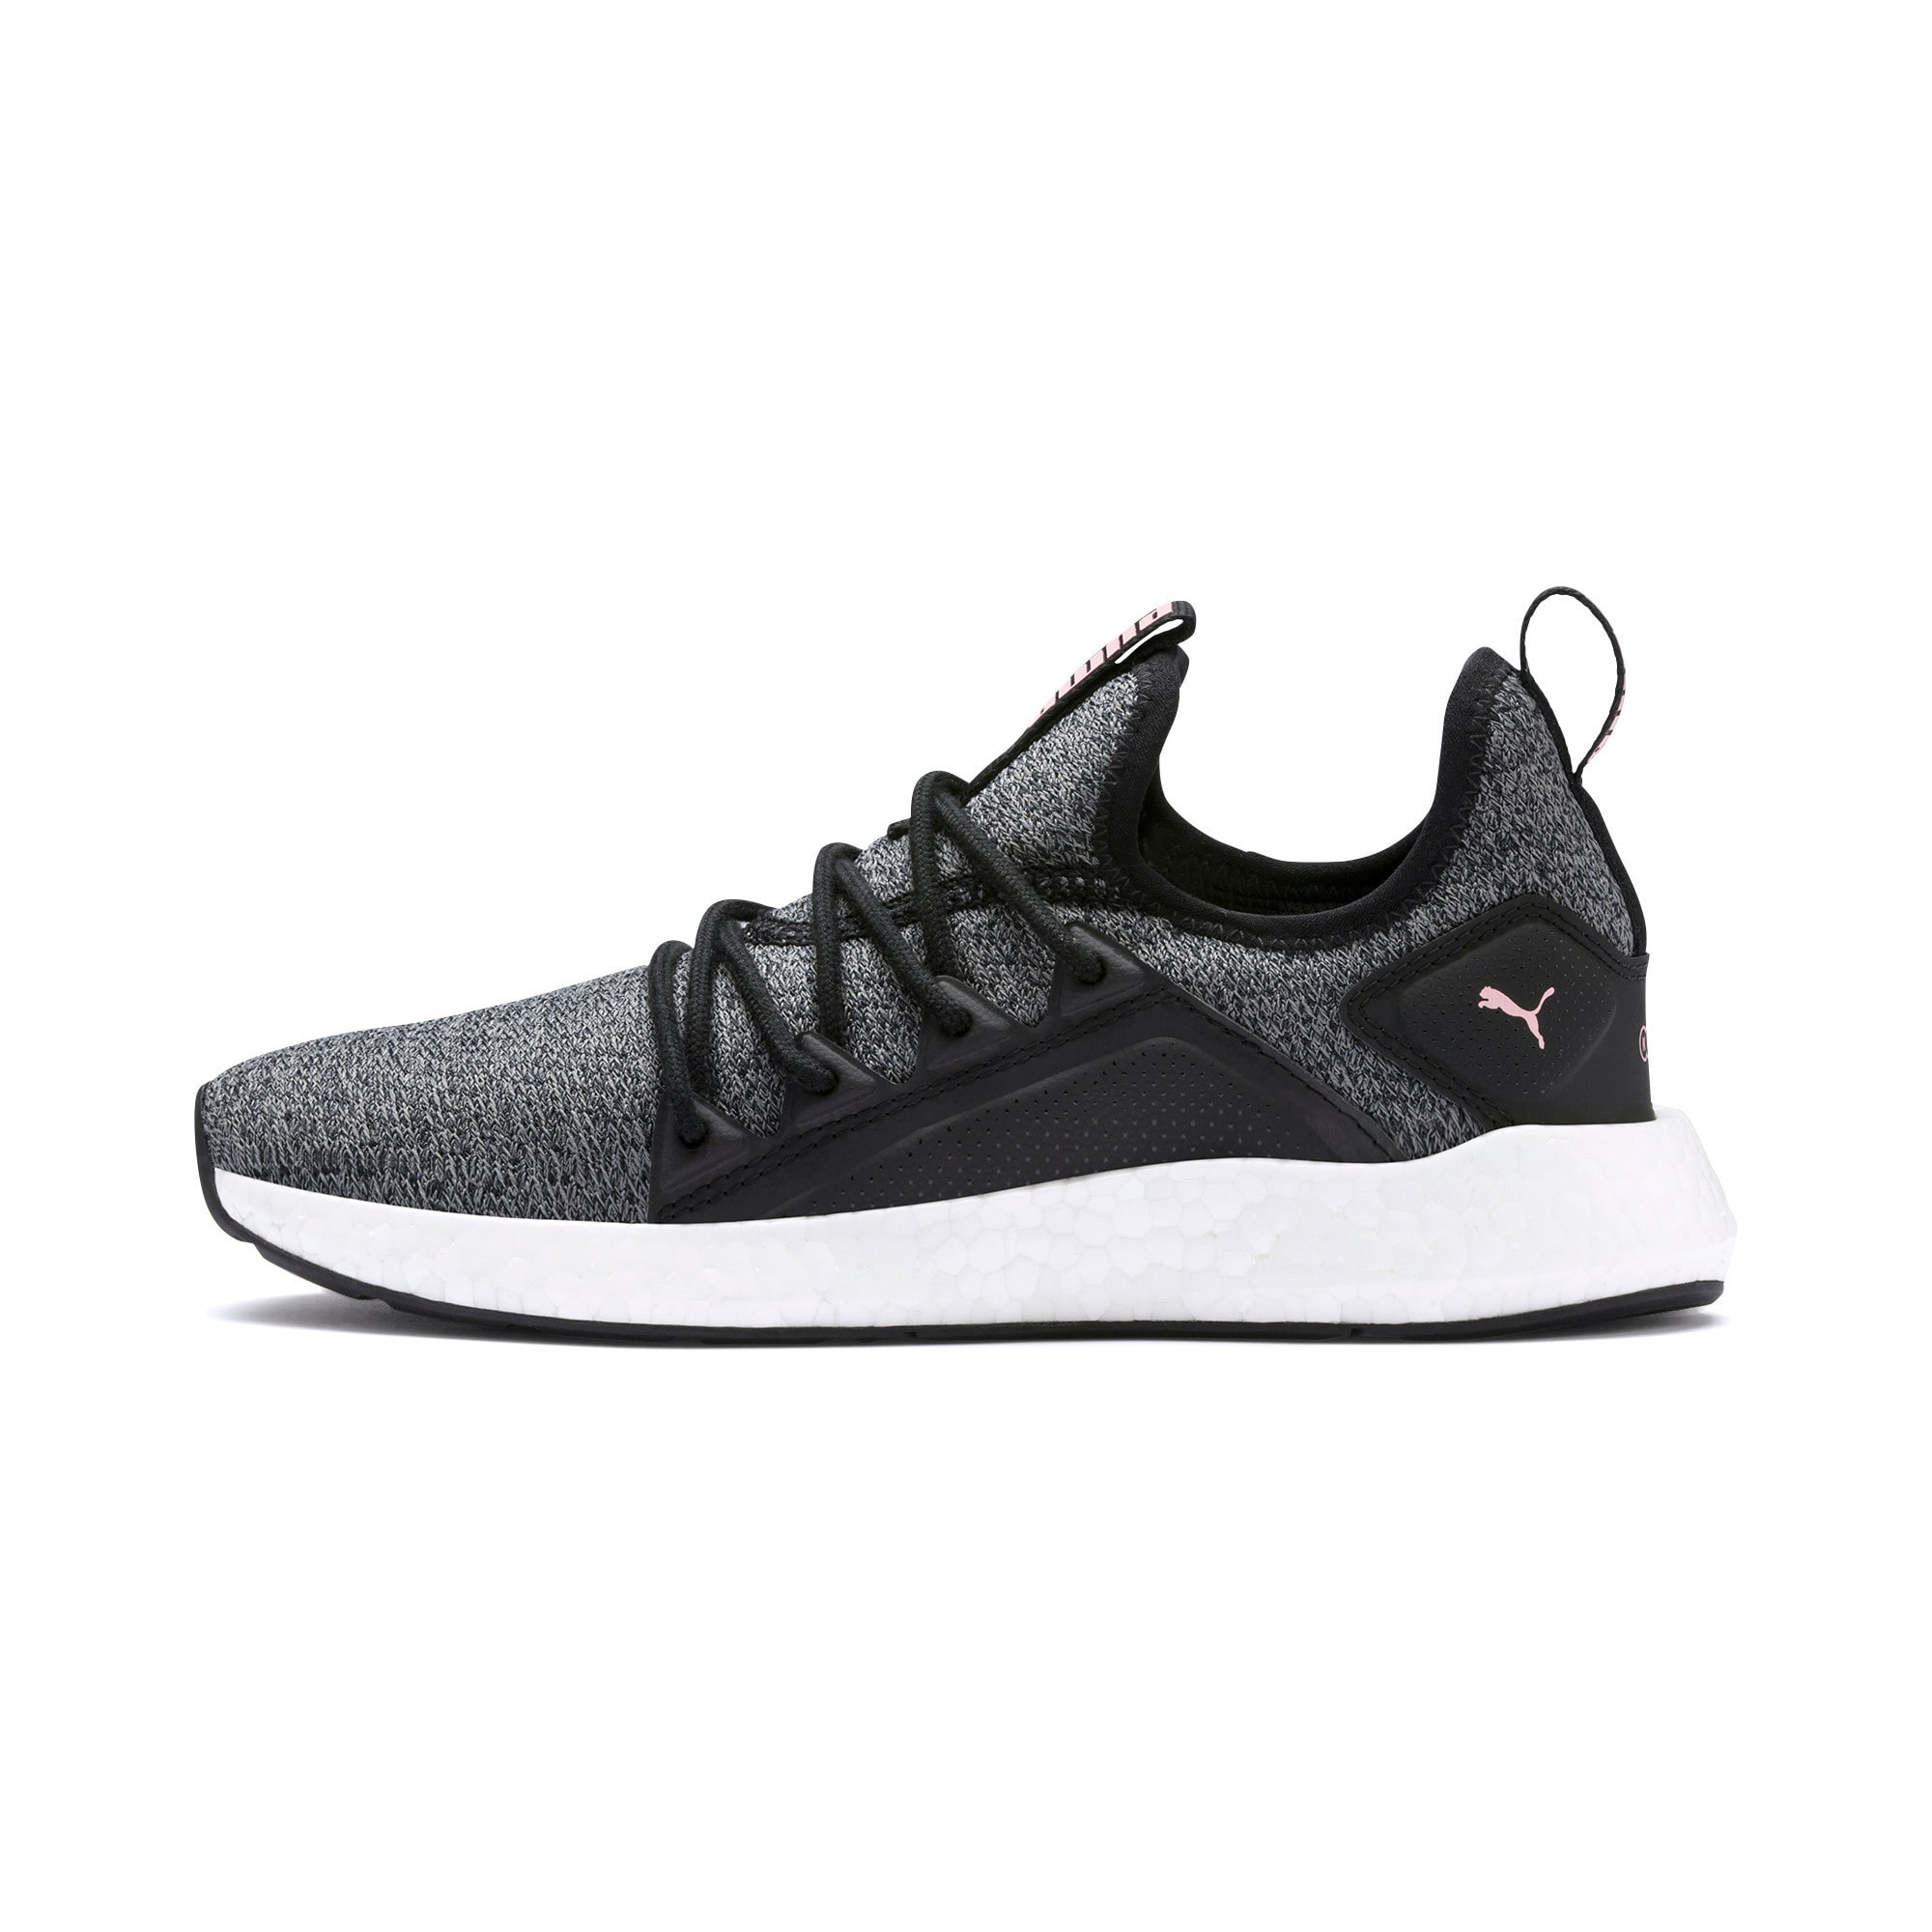 Thumbnail 1 of NRGY Neko Knit Women's Running Shoes, Puma Black-Bridal Rose, medium